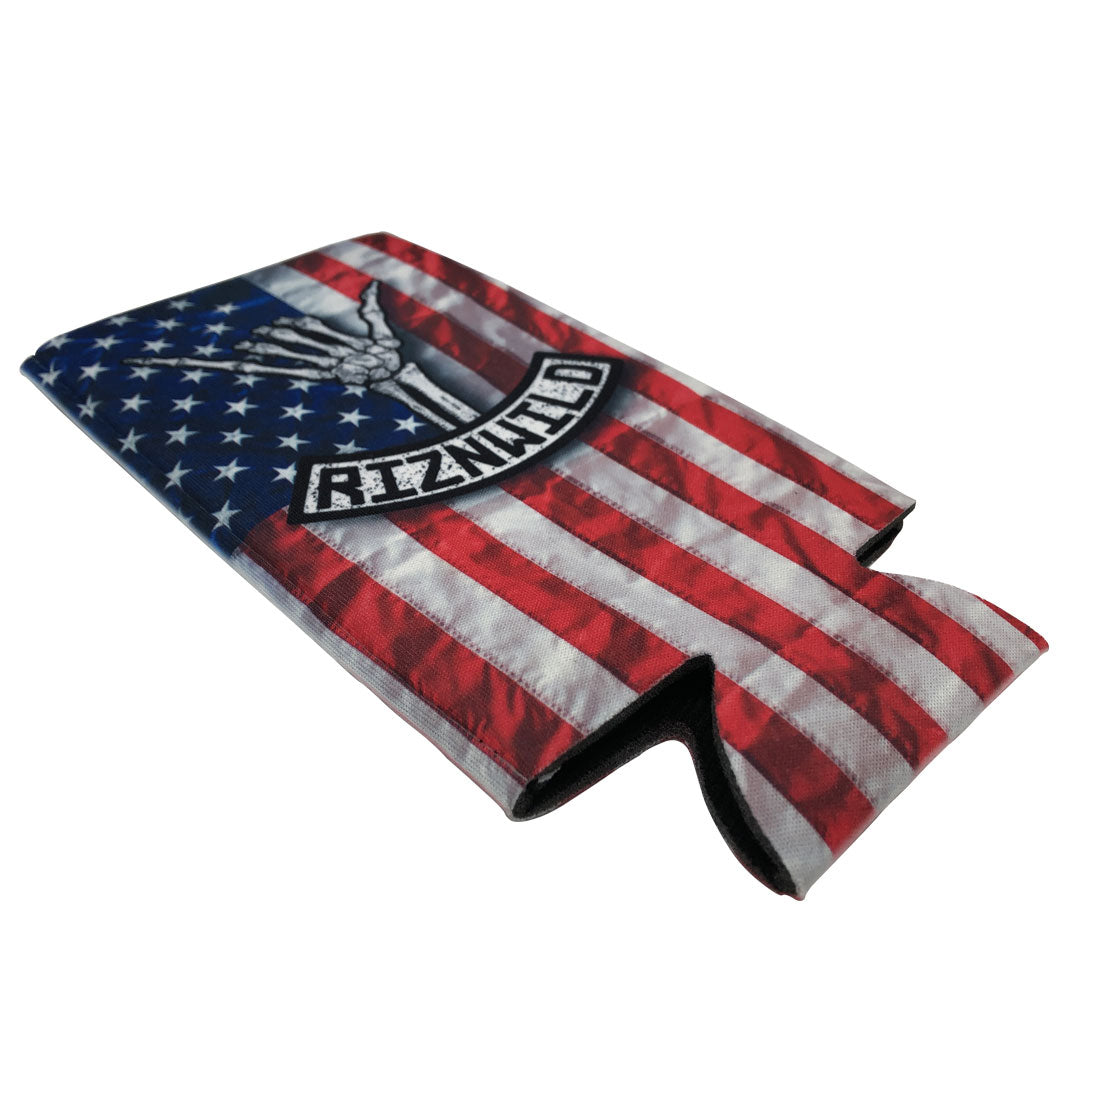 RIZNWILD | Sublimated American flag tall boy koozie